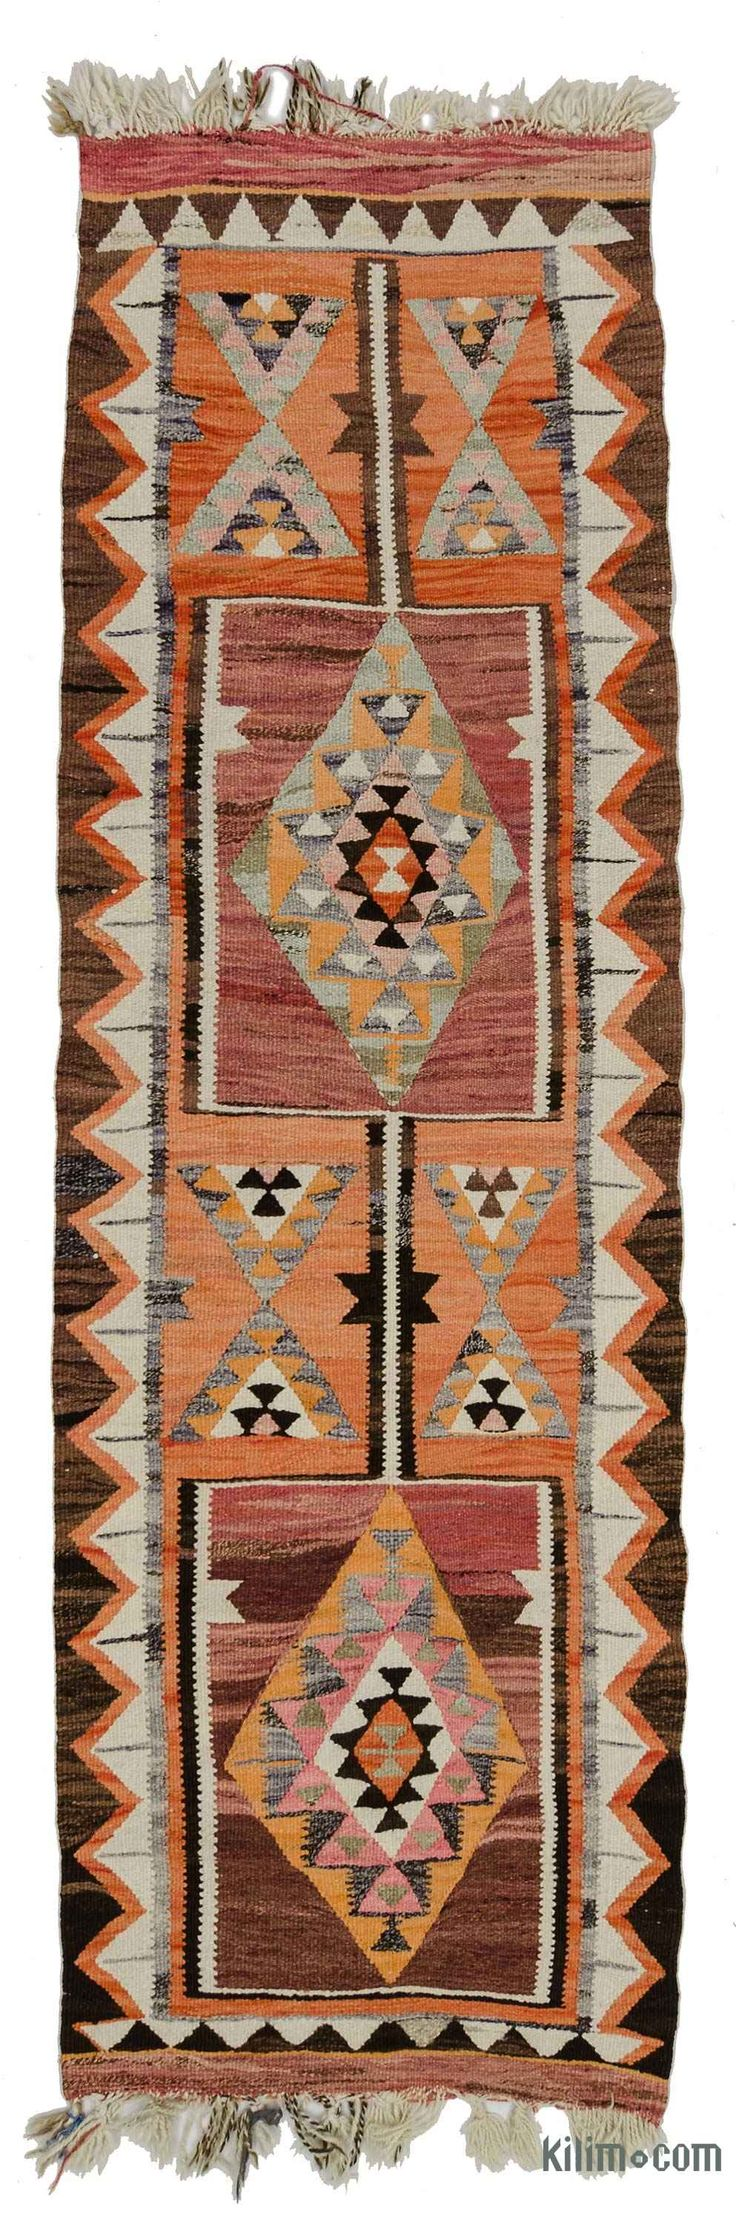 Vintage kilim runner rug from Hakkari area in Eastern Anatolia, Turkey. This tribal kilim was hand-woven in 1960's and it is in very good condition.